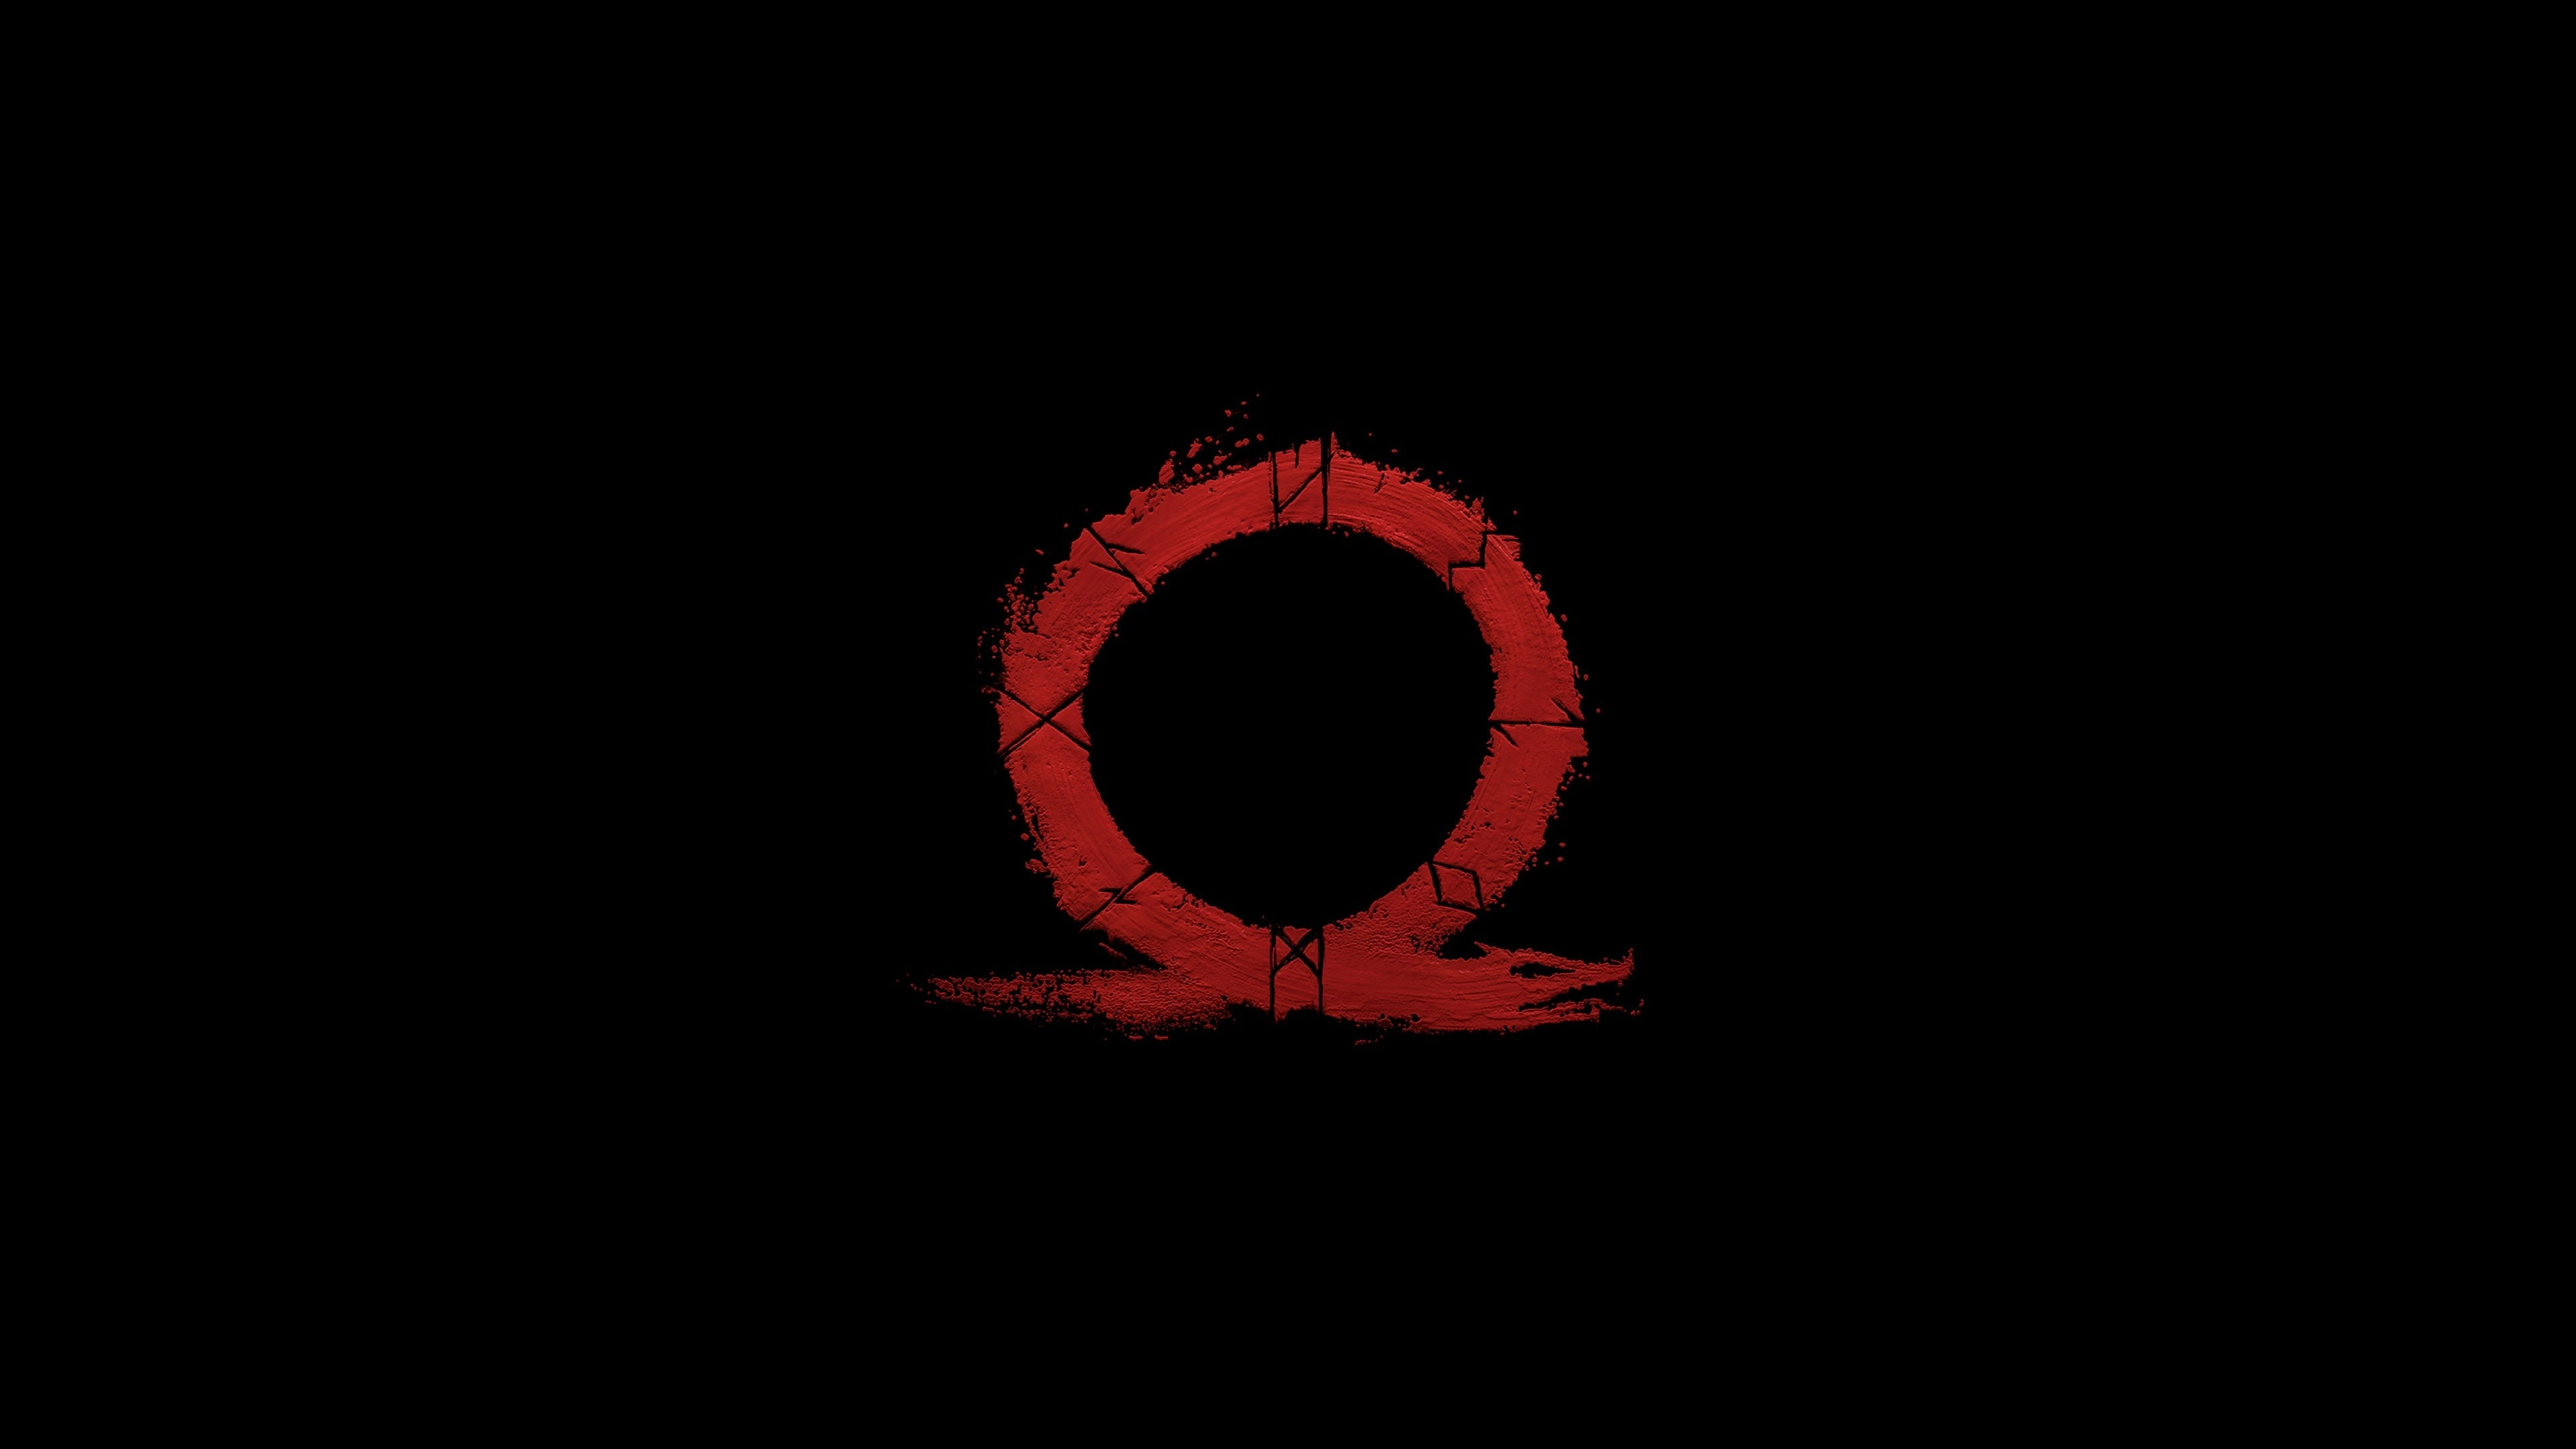 Black Wallpaper Galaxy S4 Download 3840x2400 Wallpaper God Of War Omega Logo